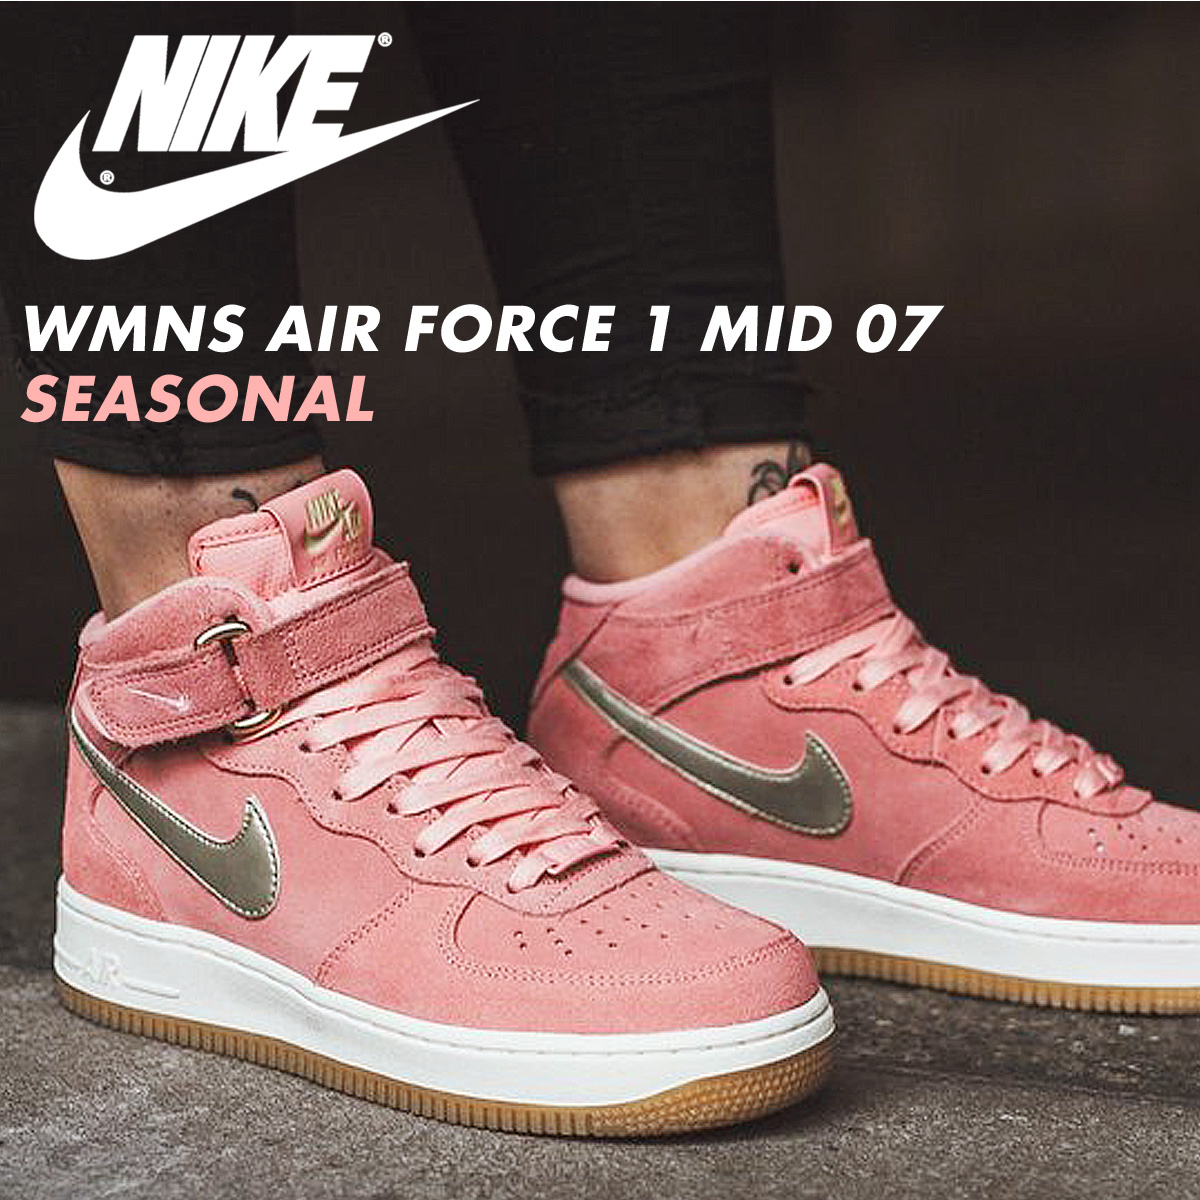 NIKE Air Force 1 Mid Seasonal